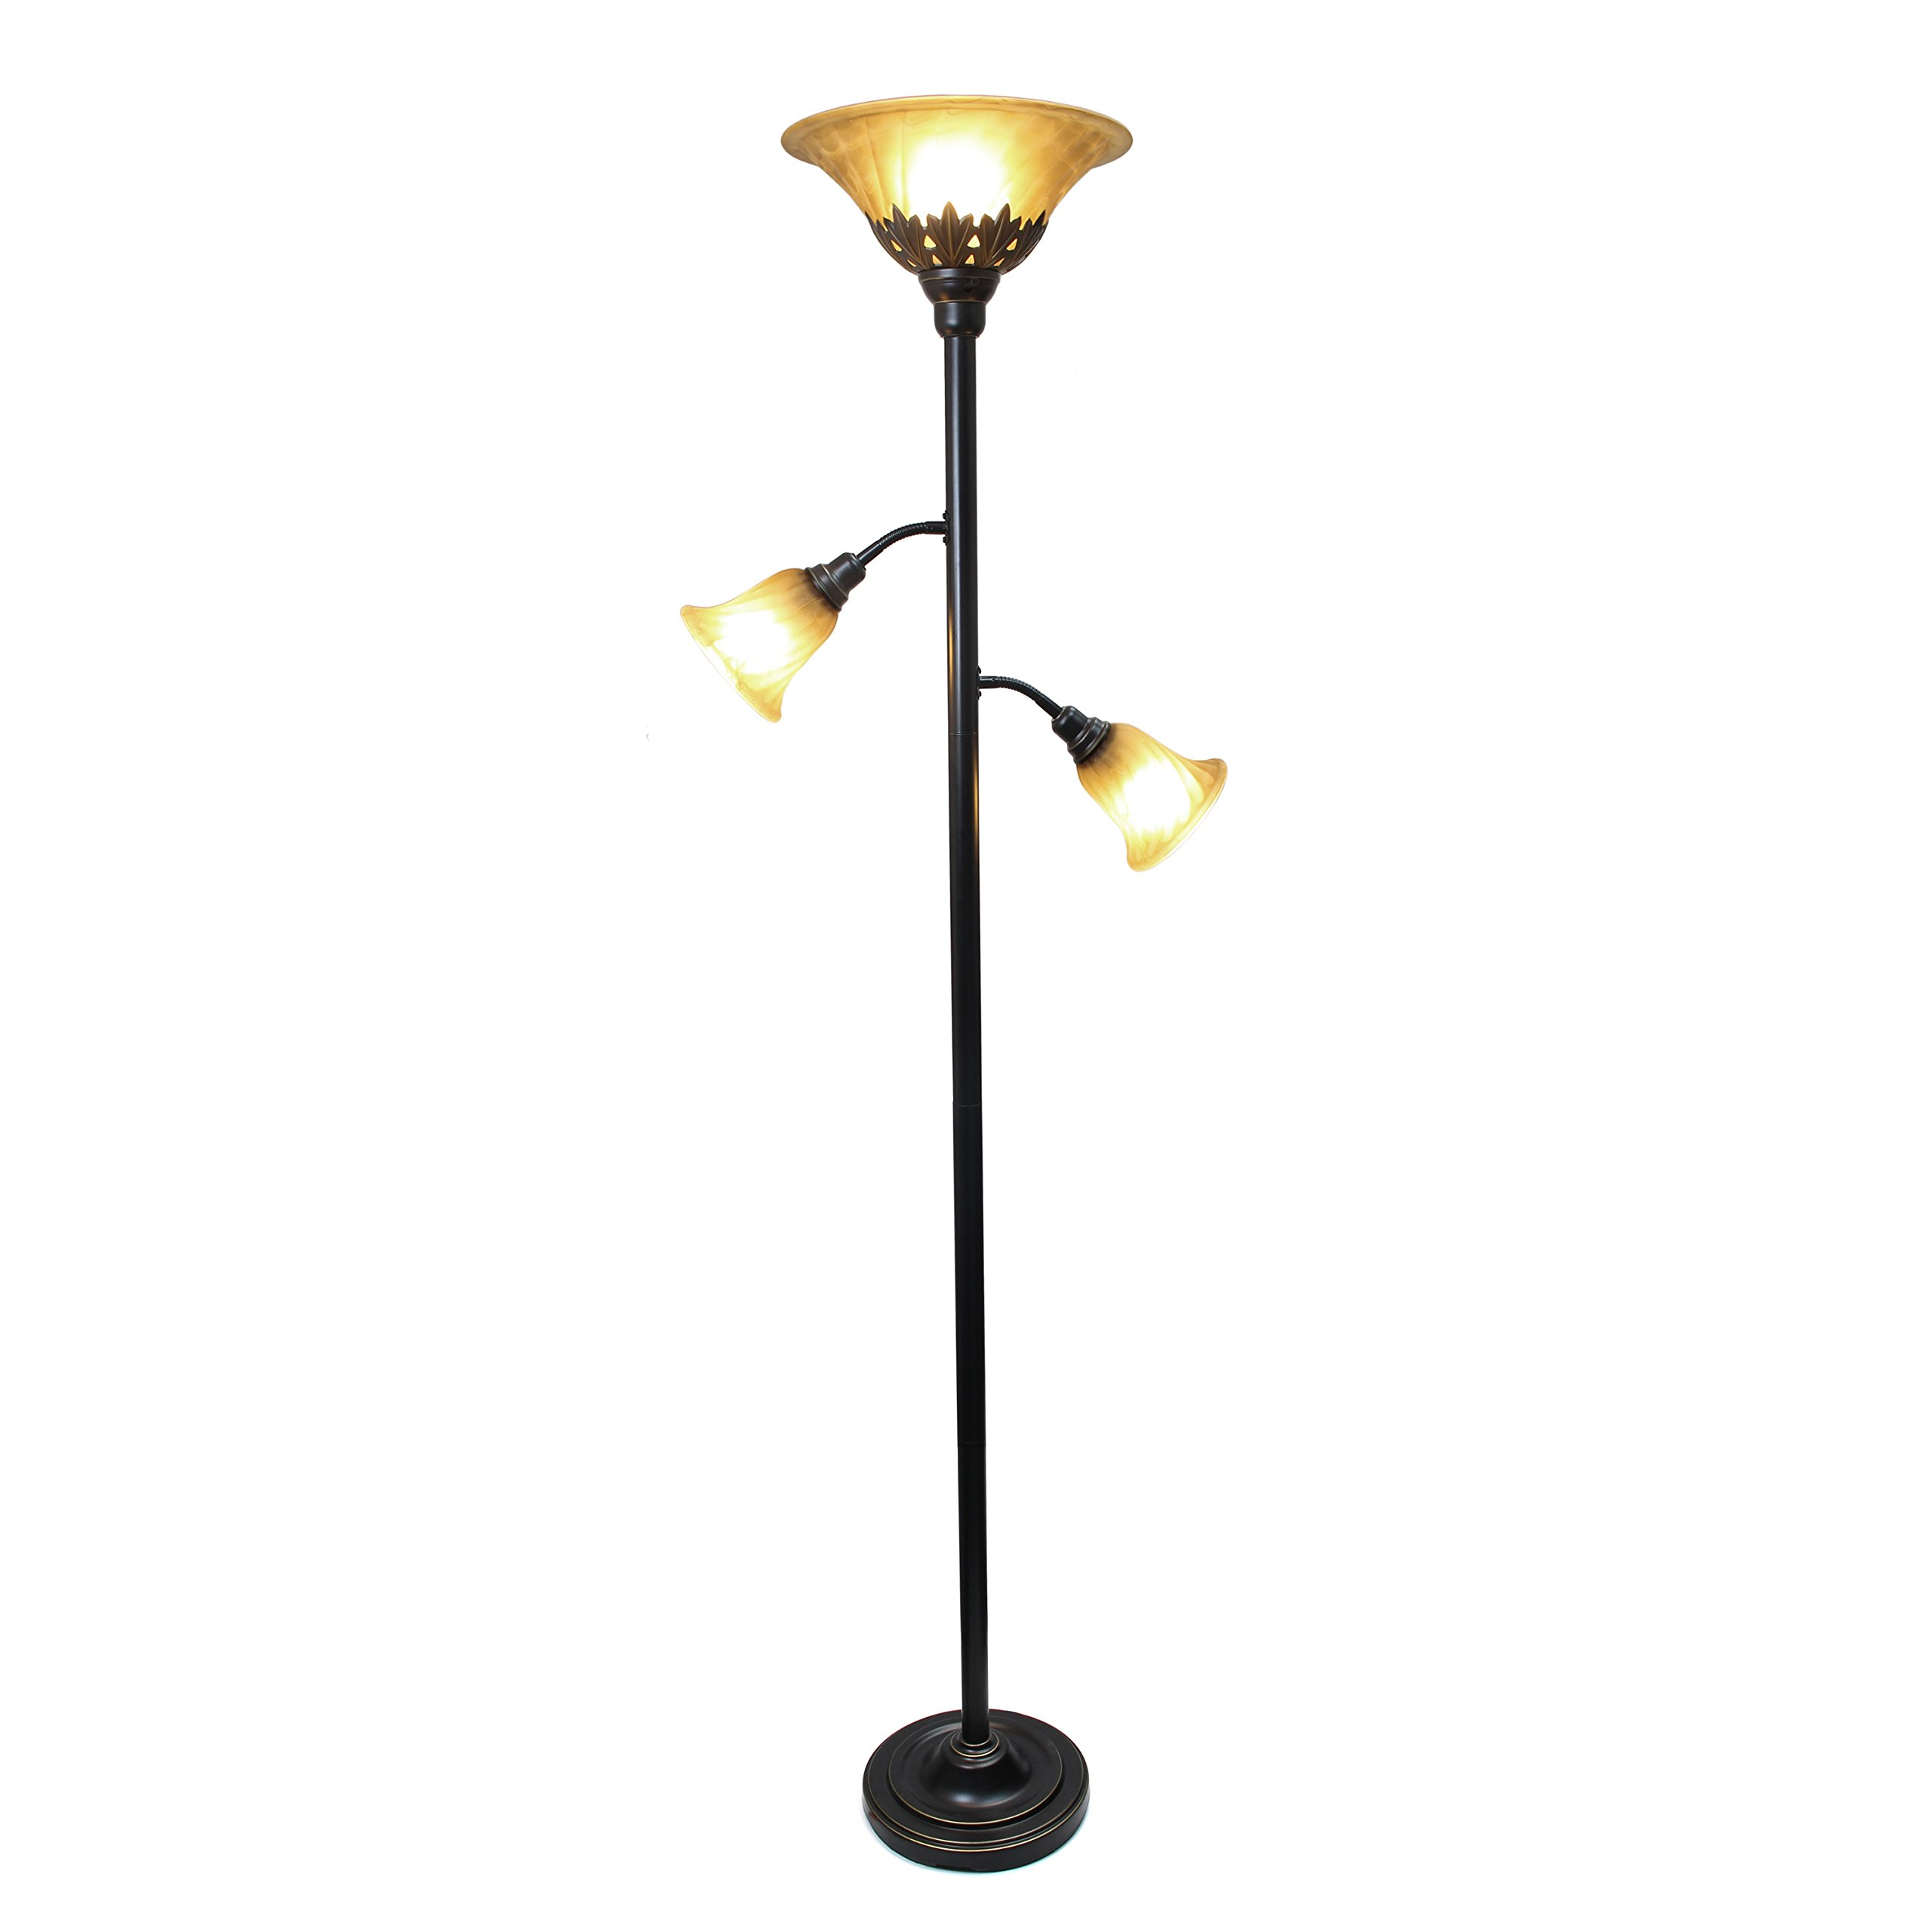 Elegant Designs LF2002-RBZ 3 Light Floor Lamp with Scalloped Glass Shades,Restoration Bronze by Elegant Designs